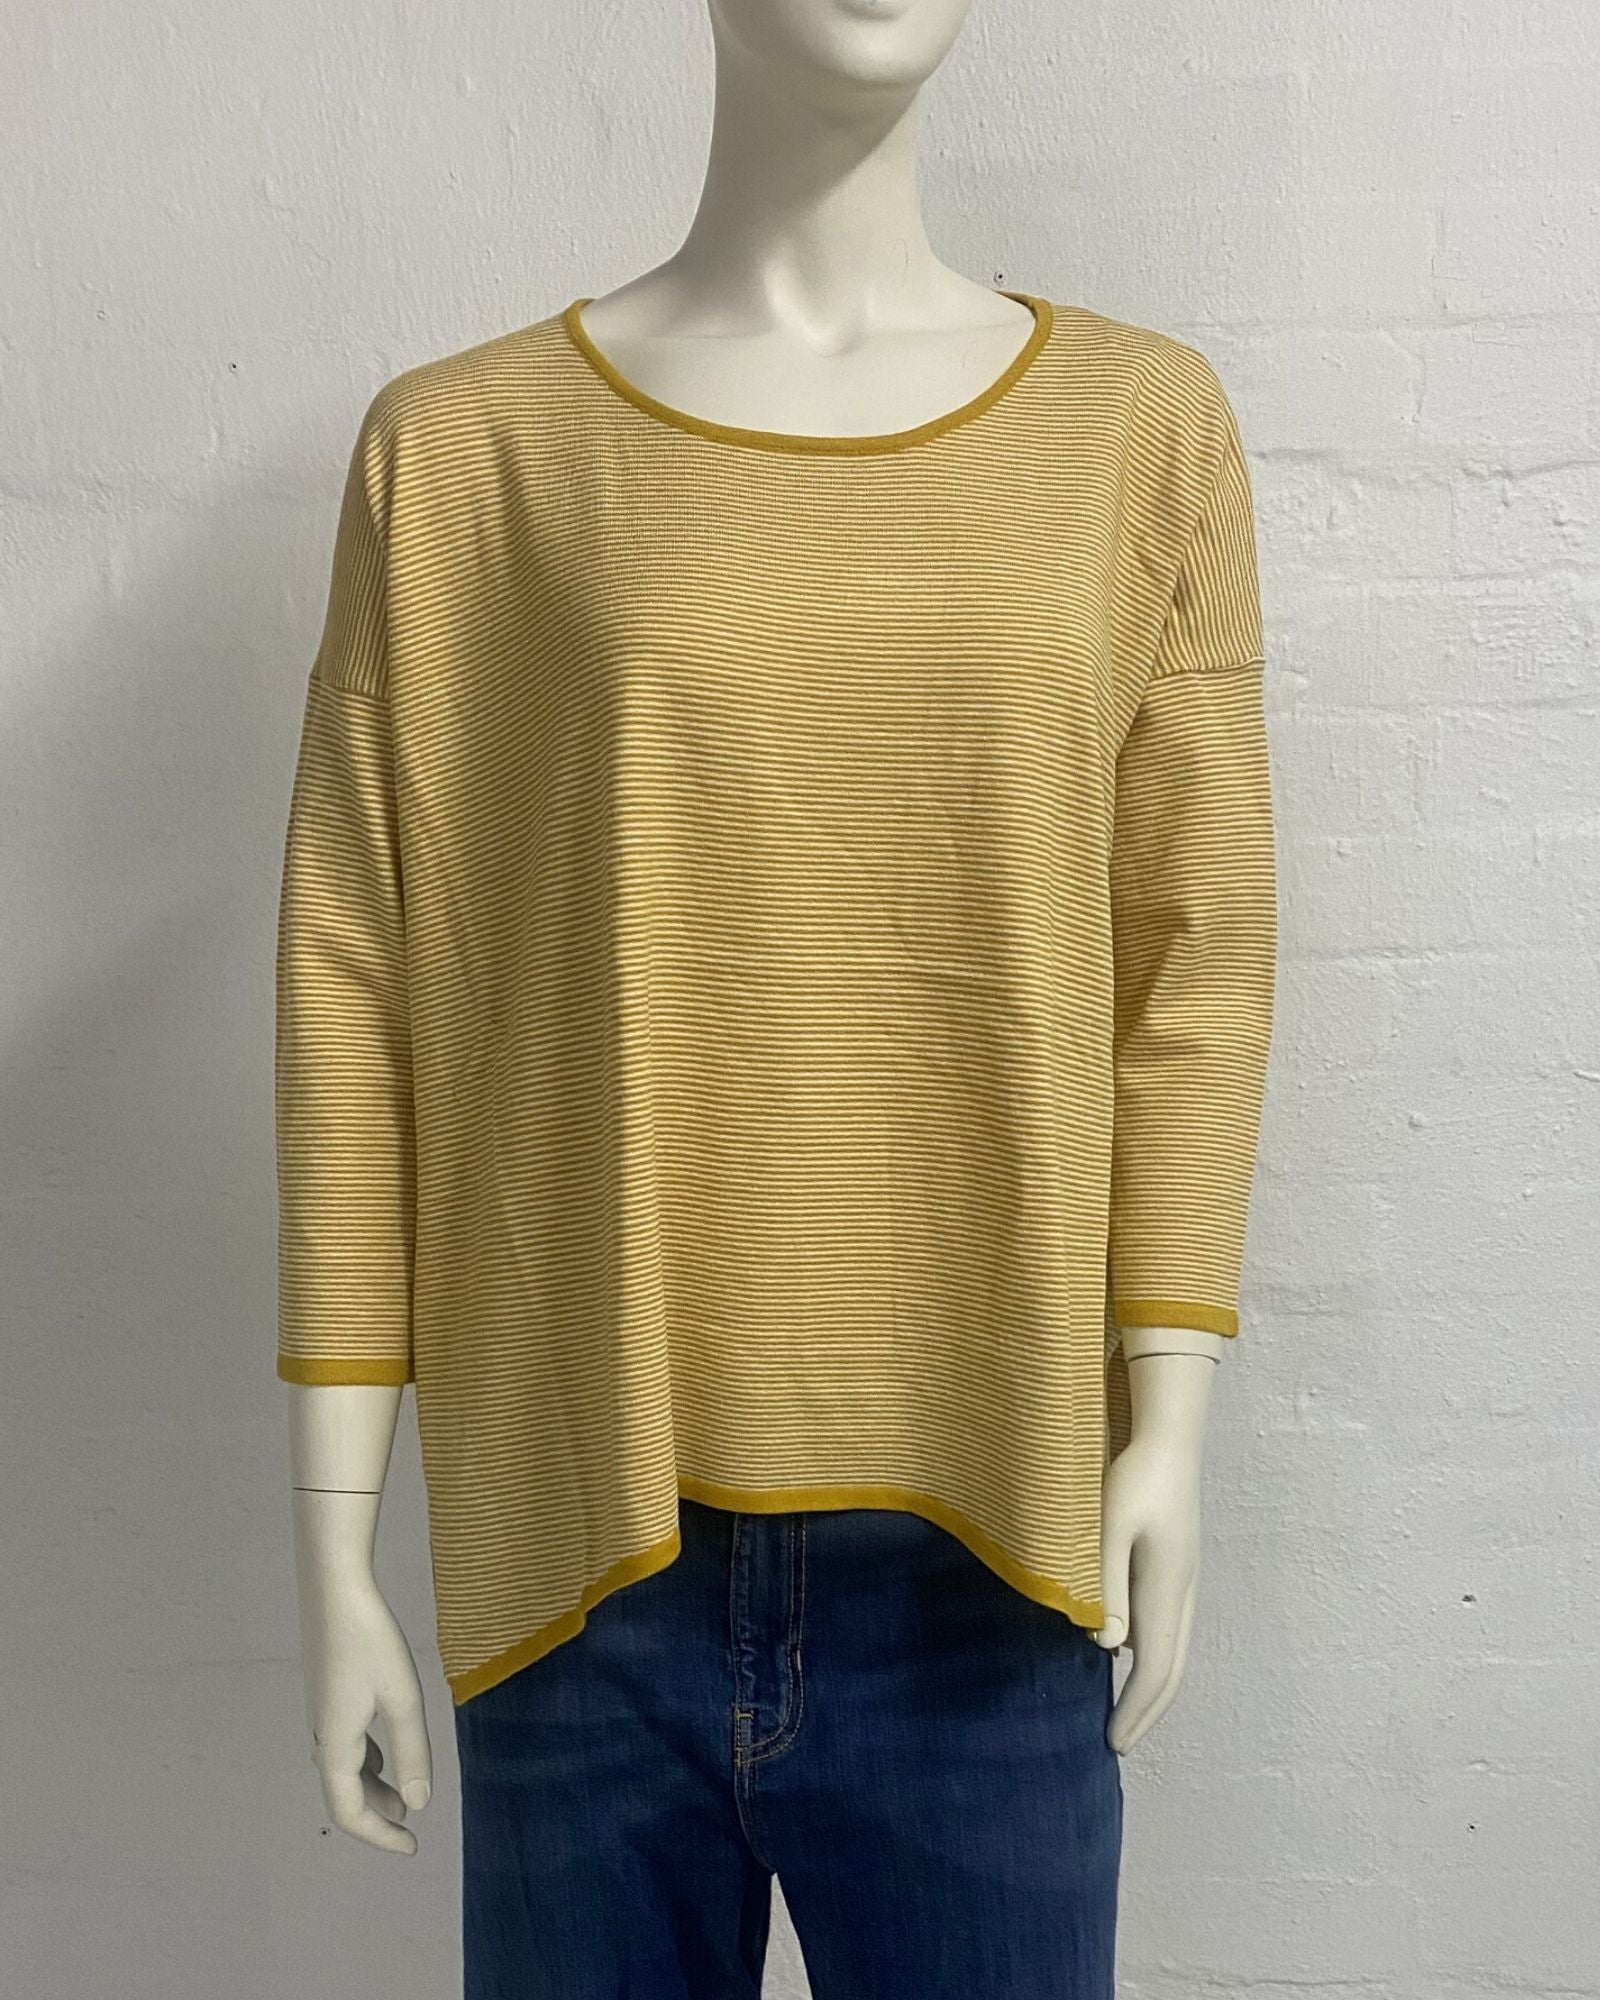 Stripe Knit Top - Mustard Size 18/20 Only